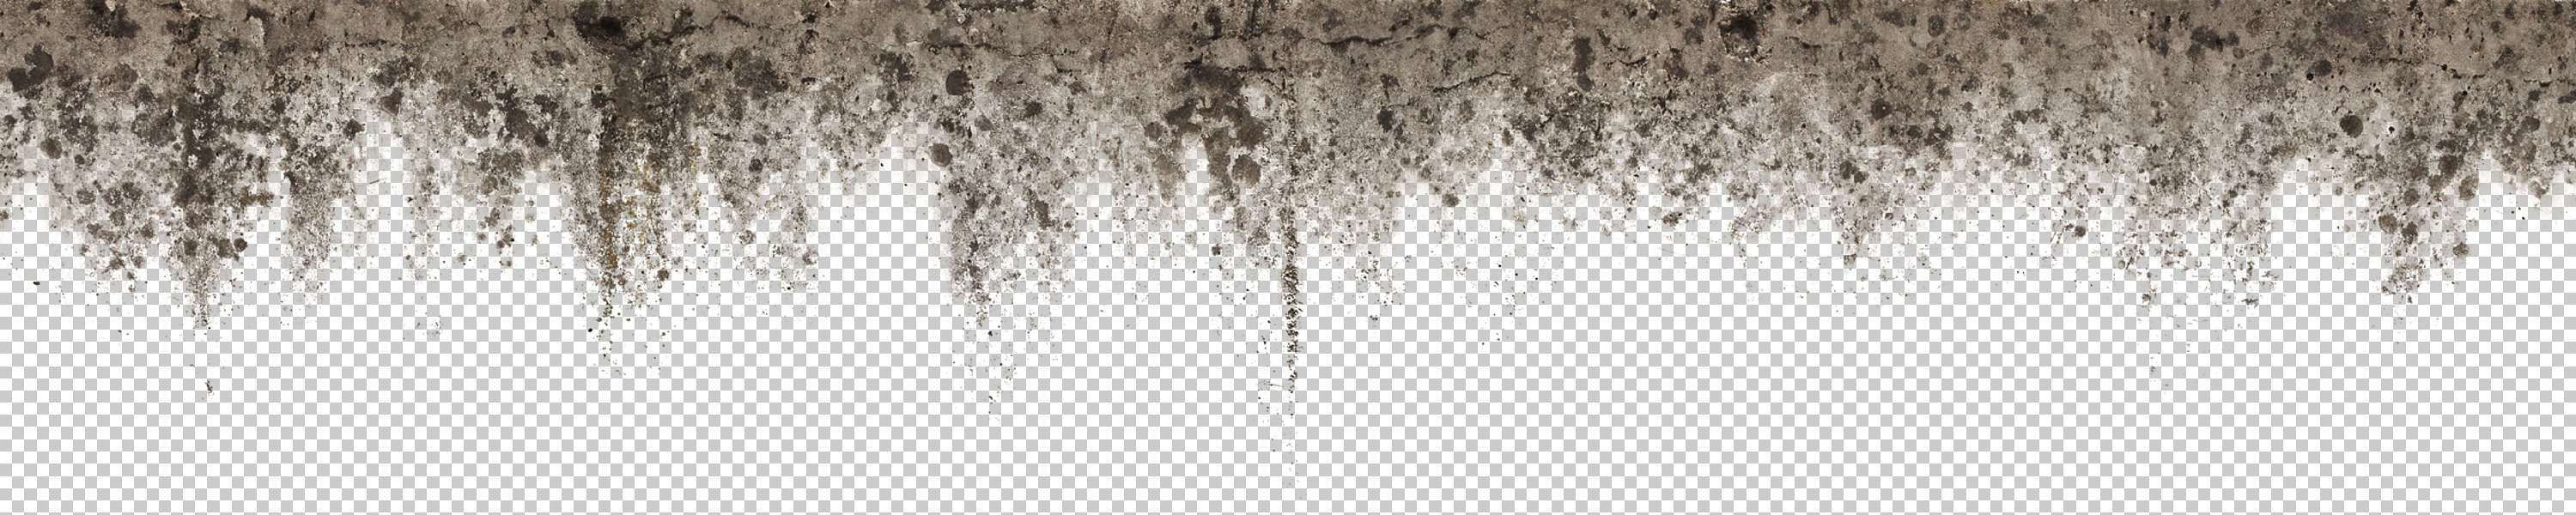 Decalsleaking0327 Free Background Texture Decal Masked